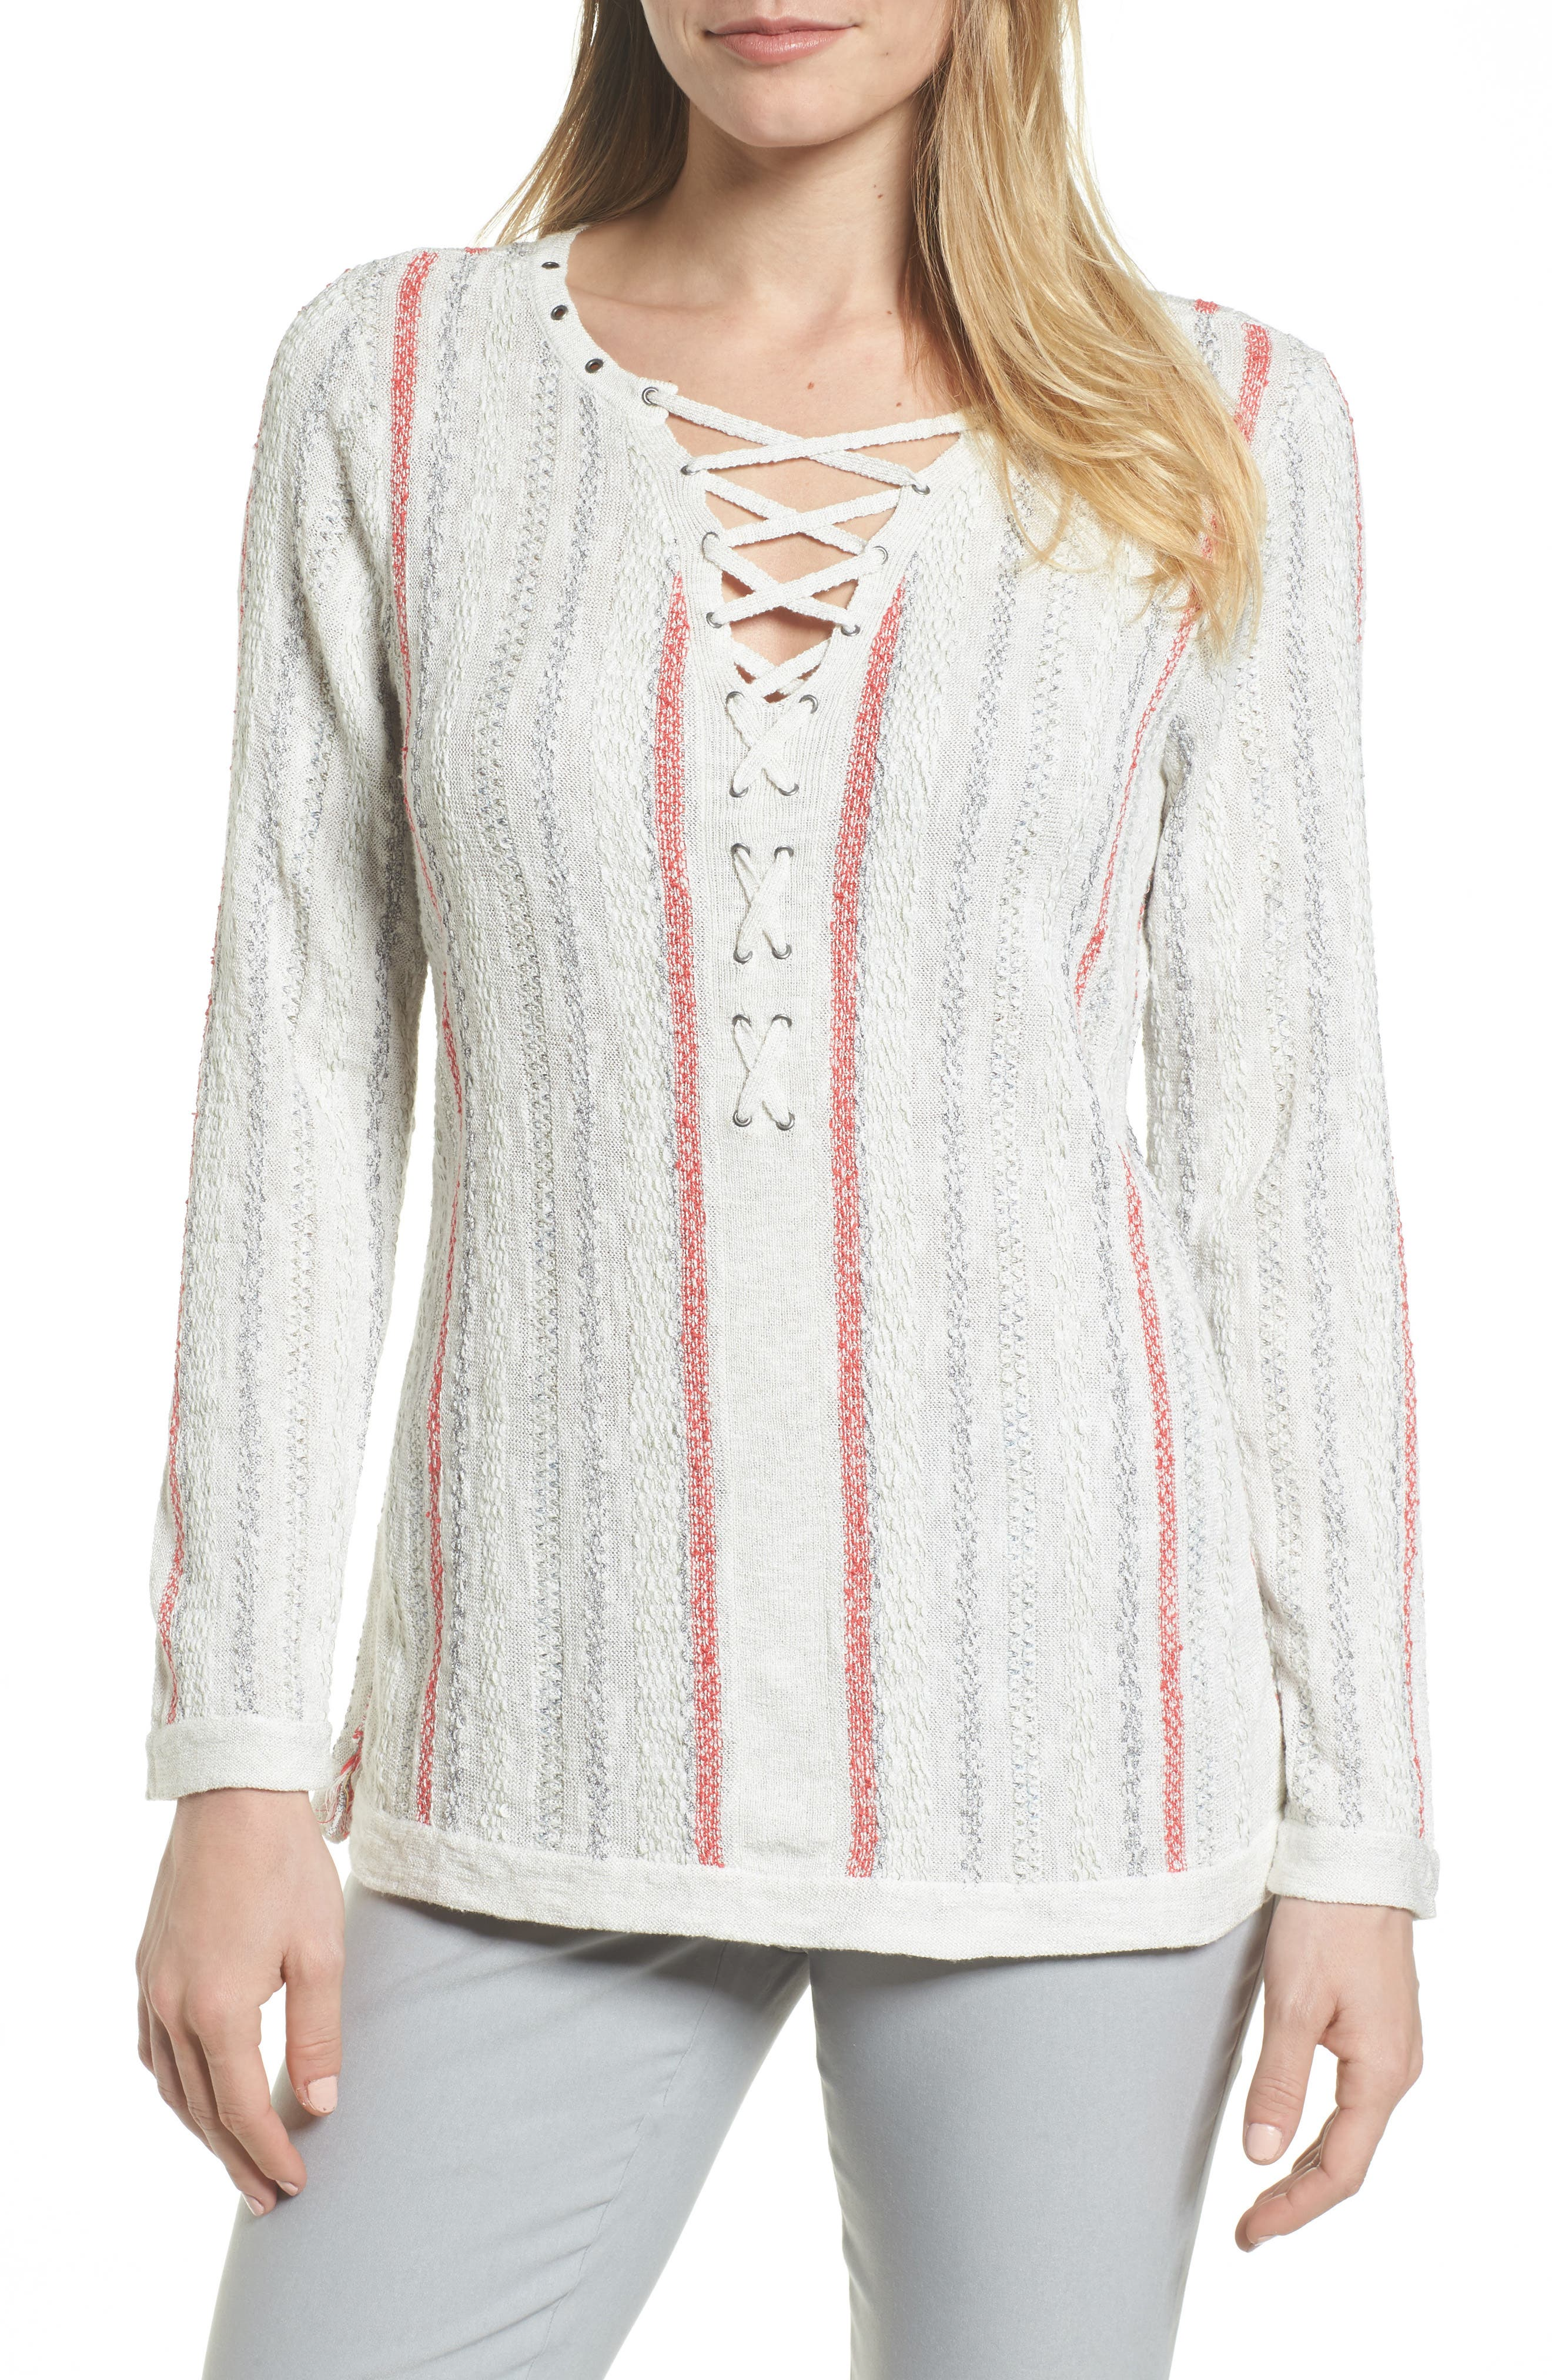 NIC + ZOE Cross Country Lace-Up Top,                         Main,                         color, Multi